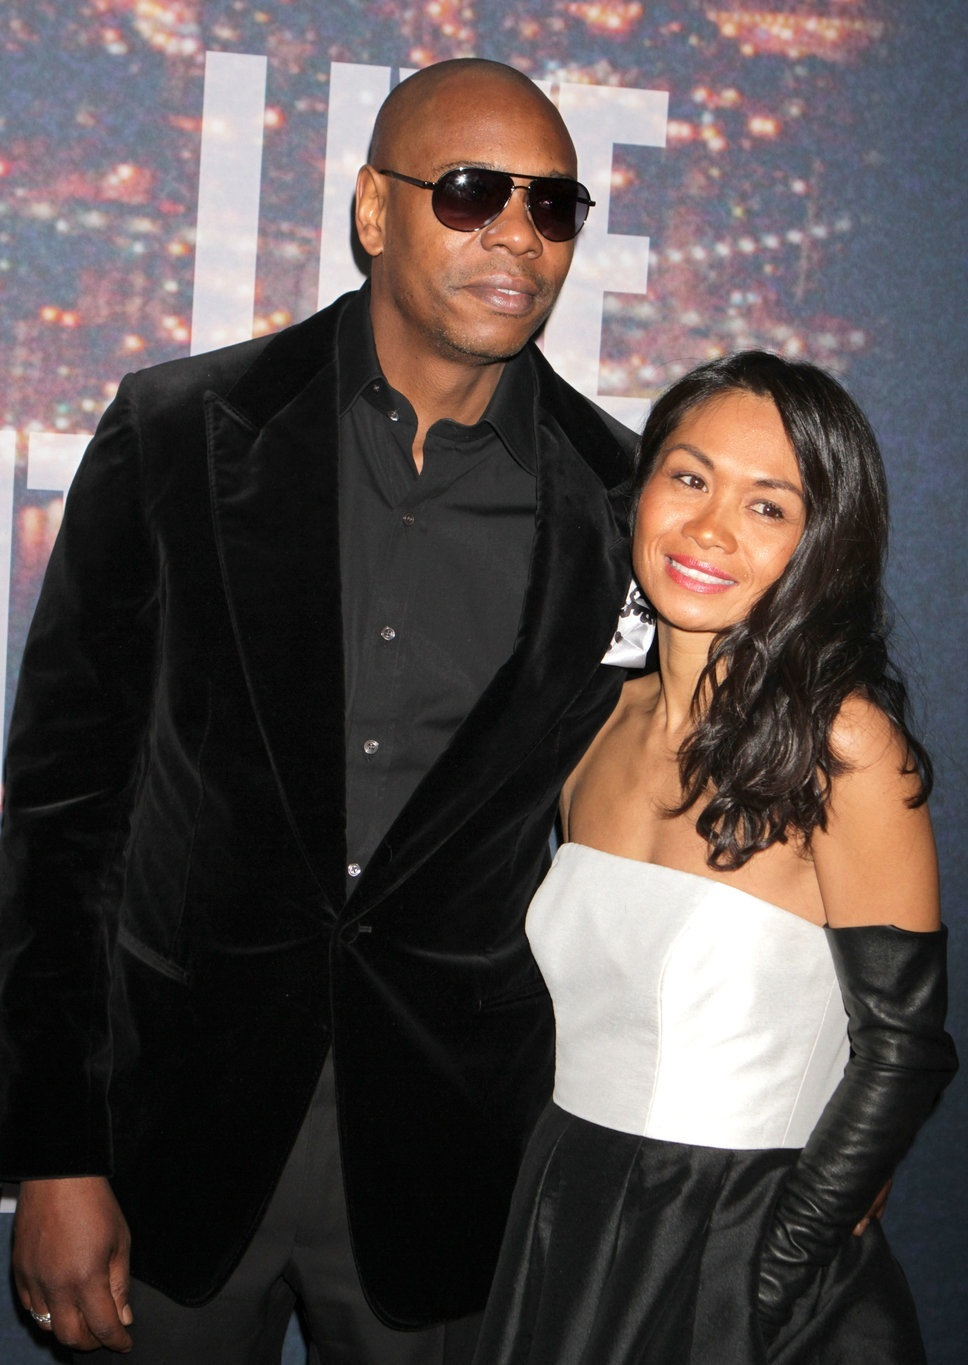 Dave Chappelle with his wife Elaine Chapelle